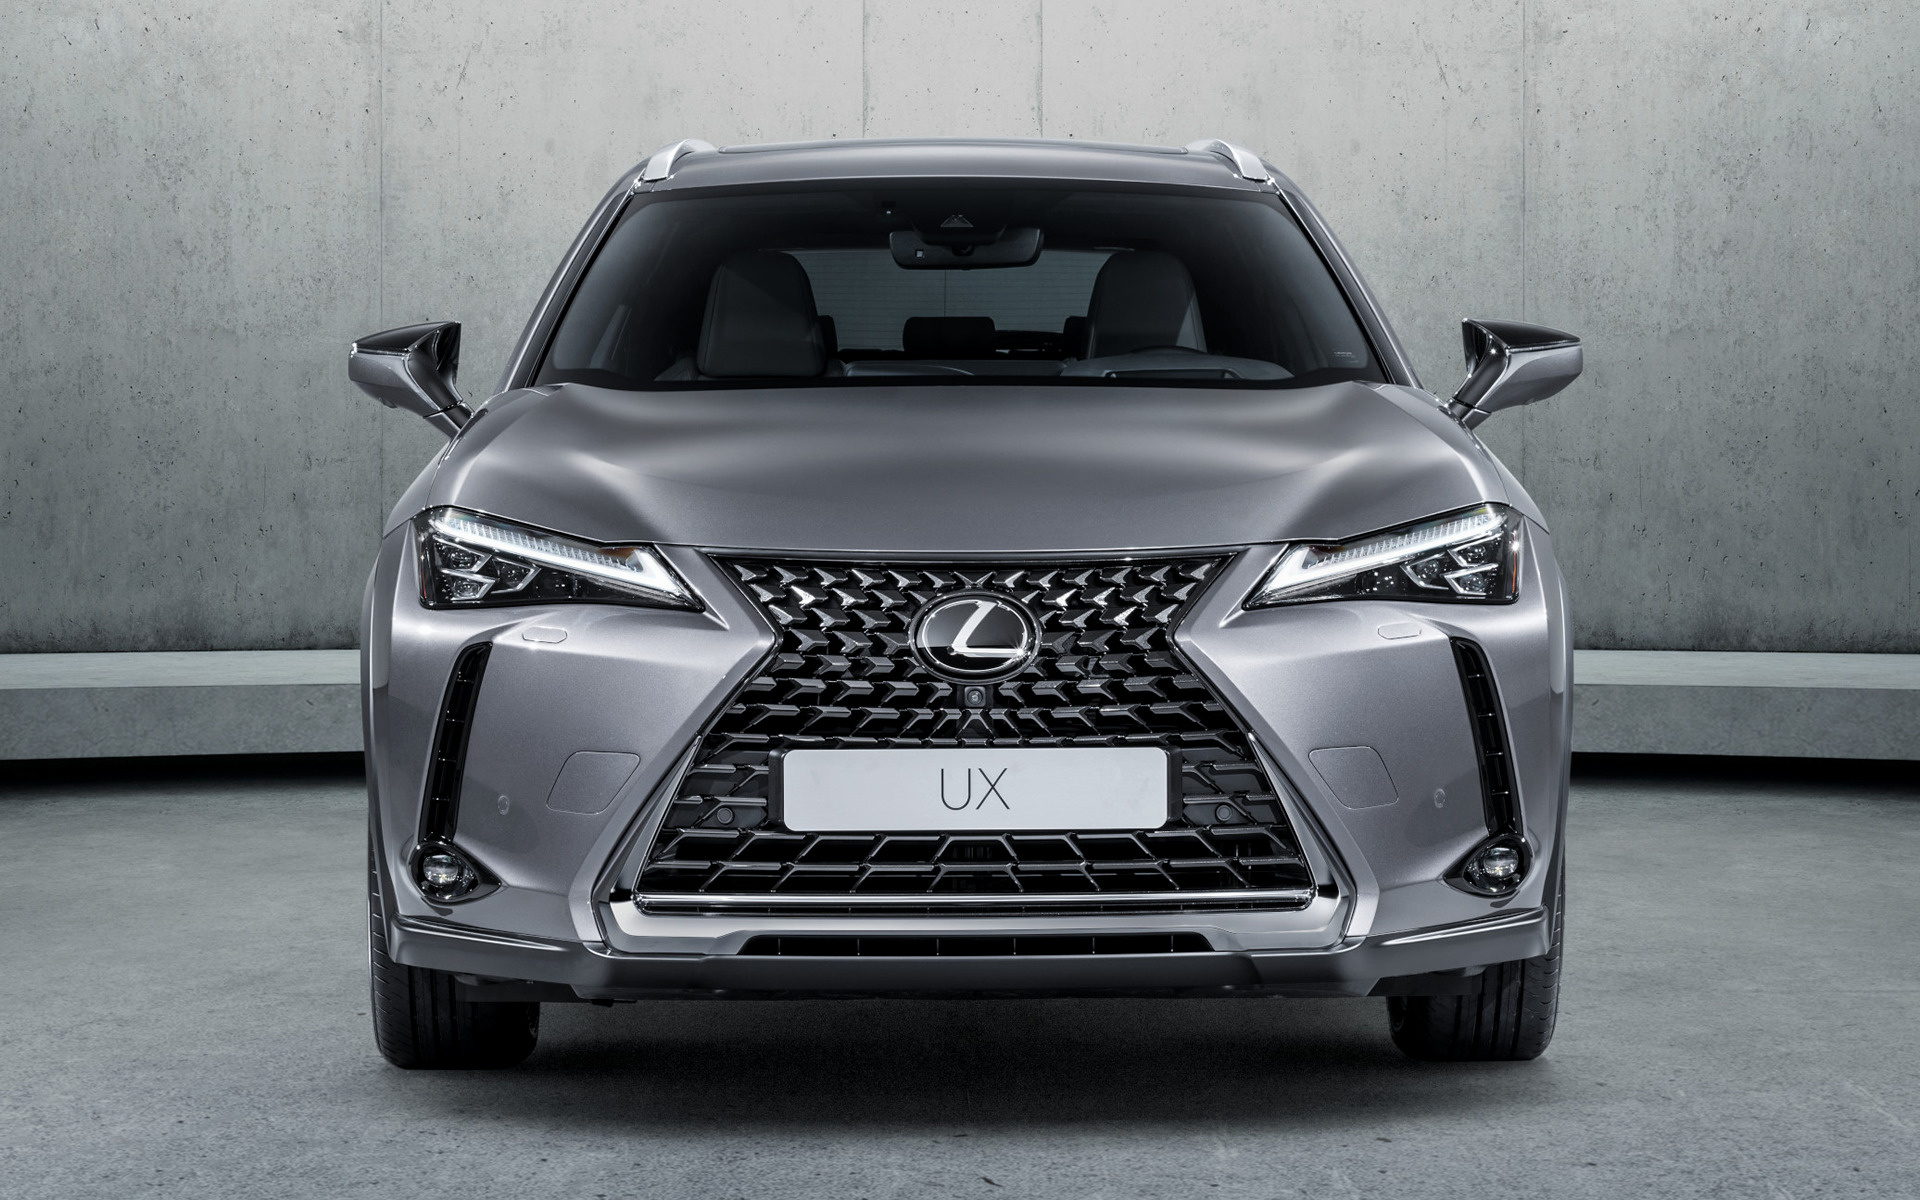 Lexus UX (2018) Wallpapers and HD Images - Car Pixel